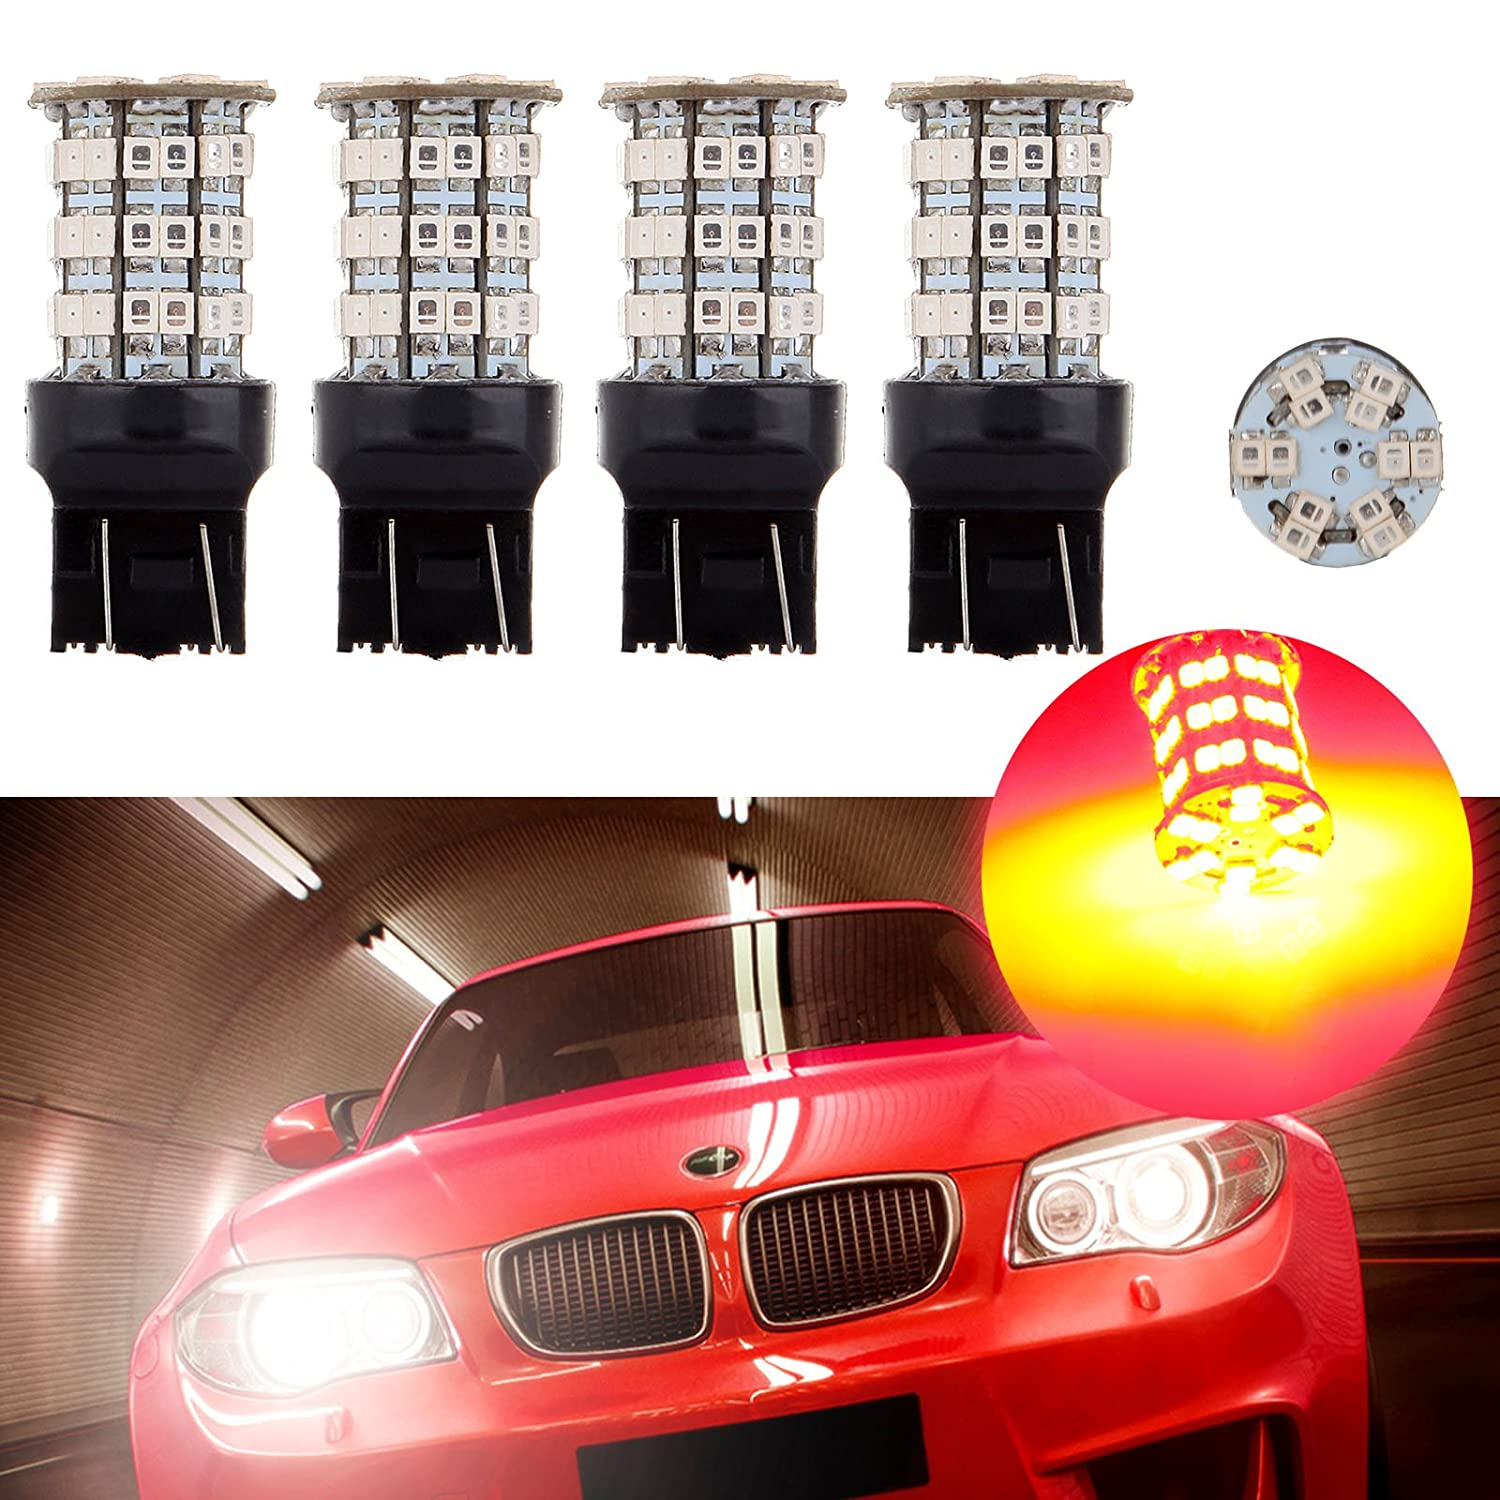 cciyu 4 Pack Red 6000K 40W 4000LM 7443 7444 7440 Cree LED 60 SMD Stock Bulb Stop Light US